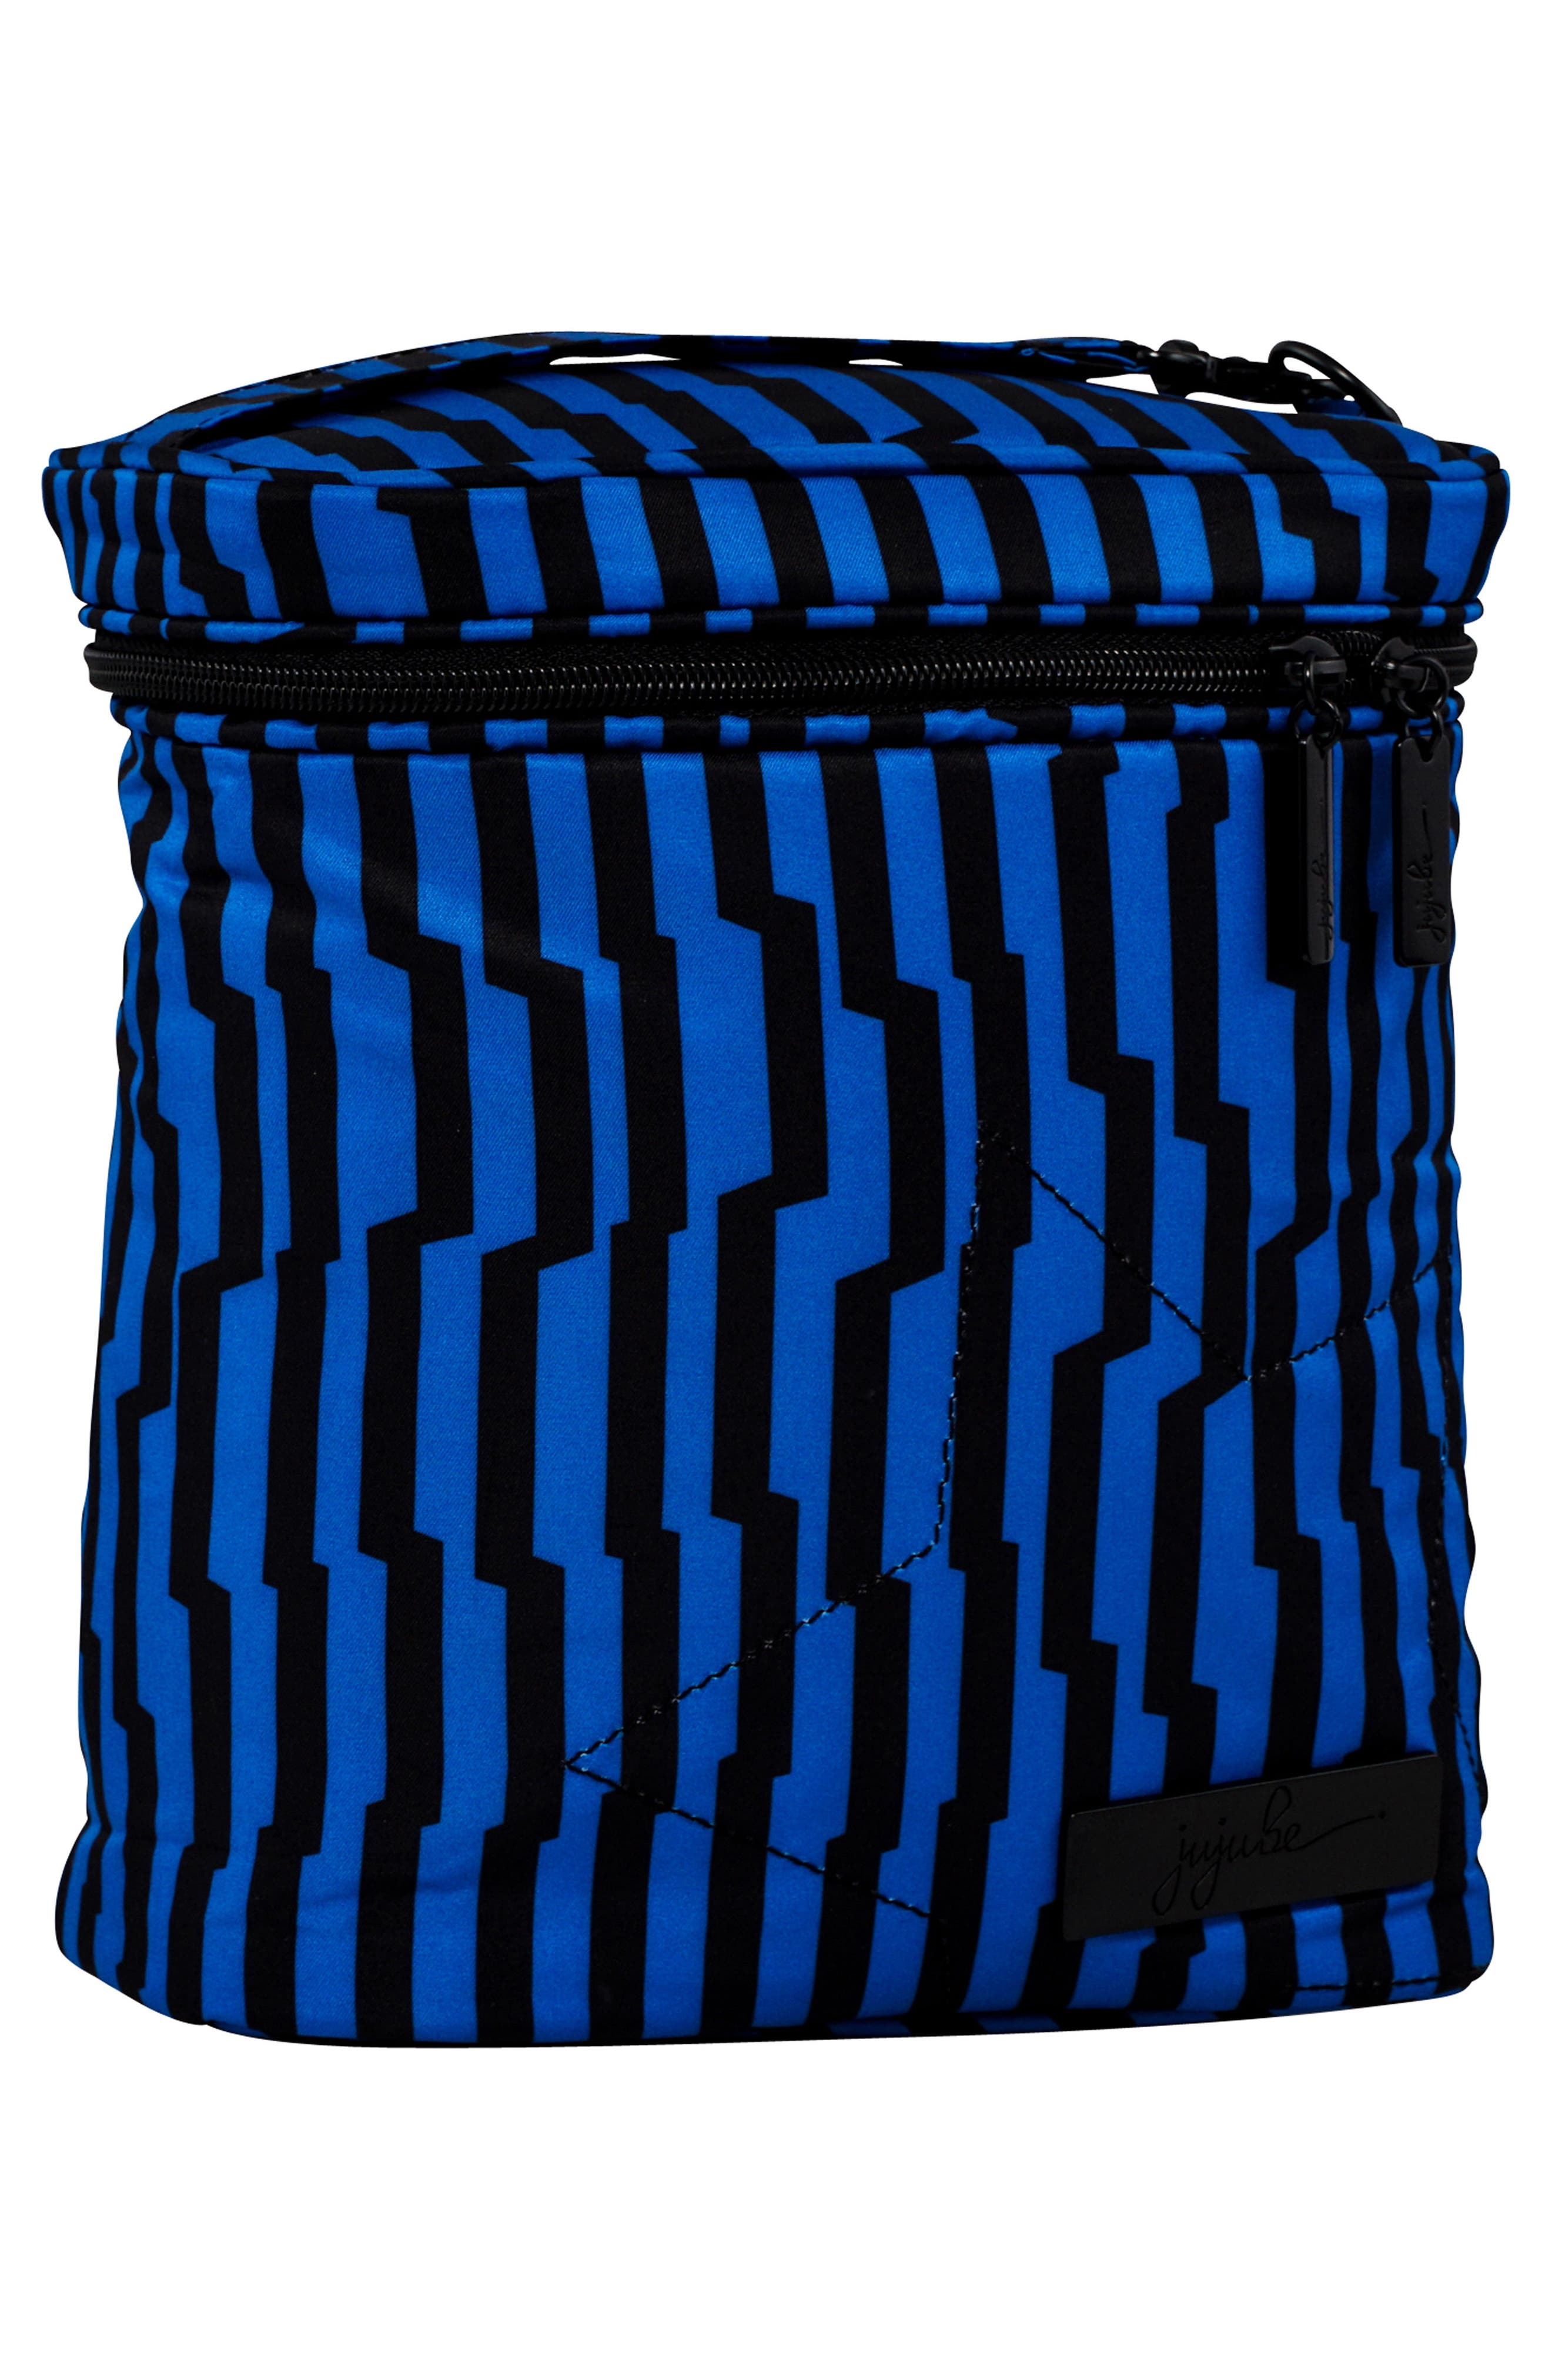 'Fuel Cell - Onyx Collection' Lunch Bag,                             Alternate thumbnail 5, color,                             001